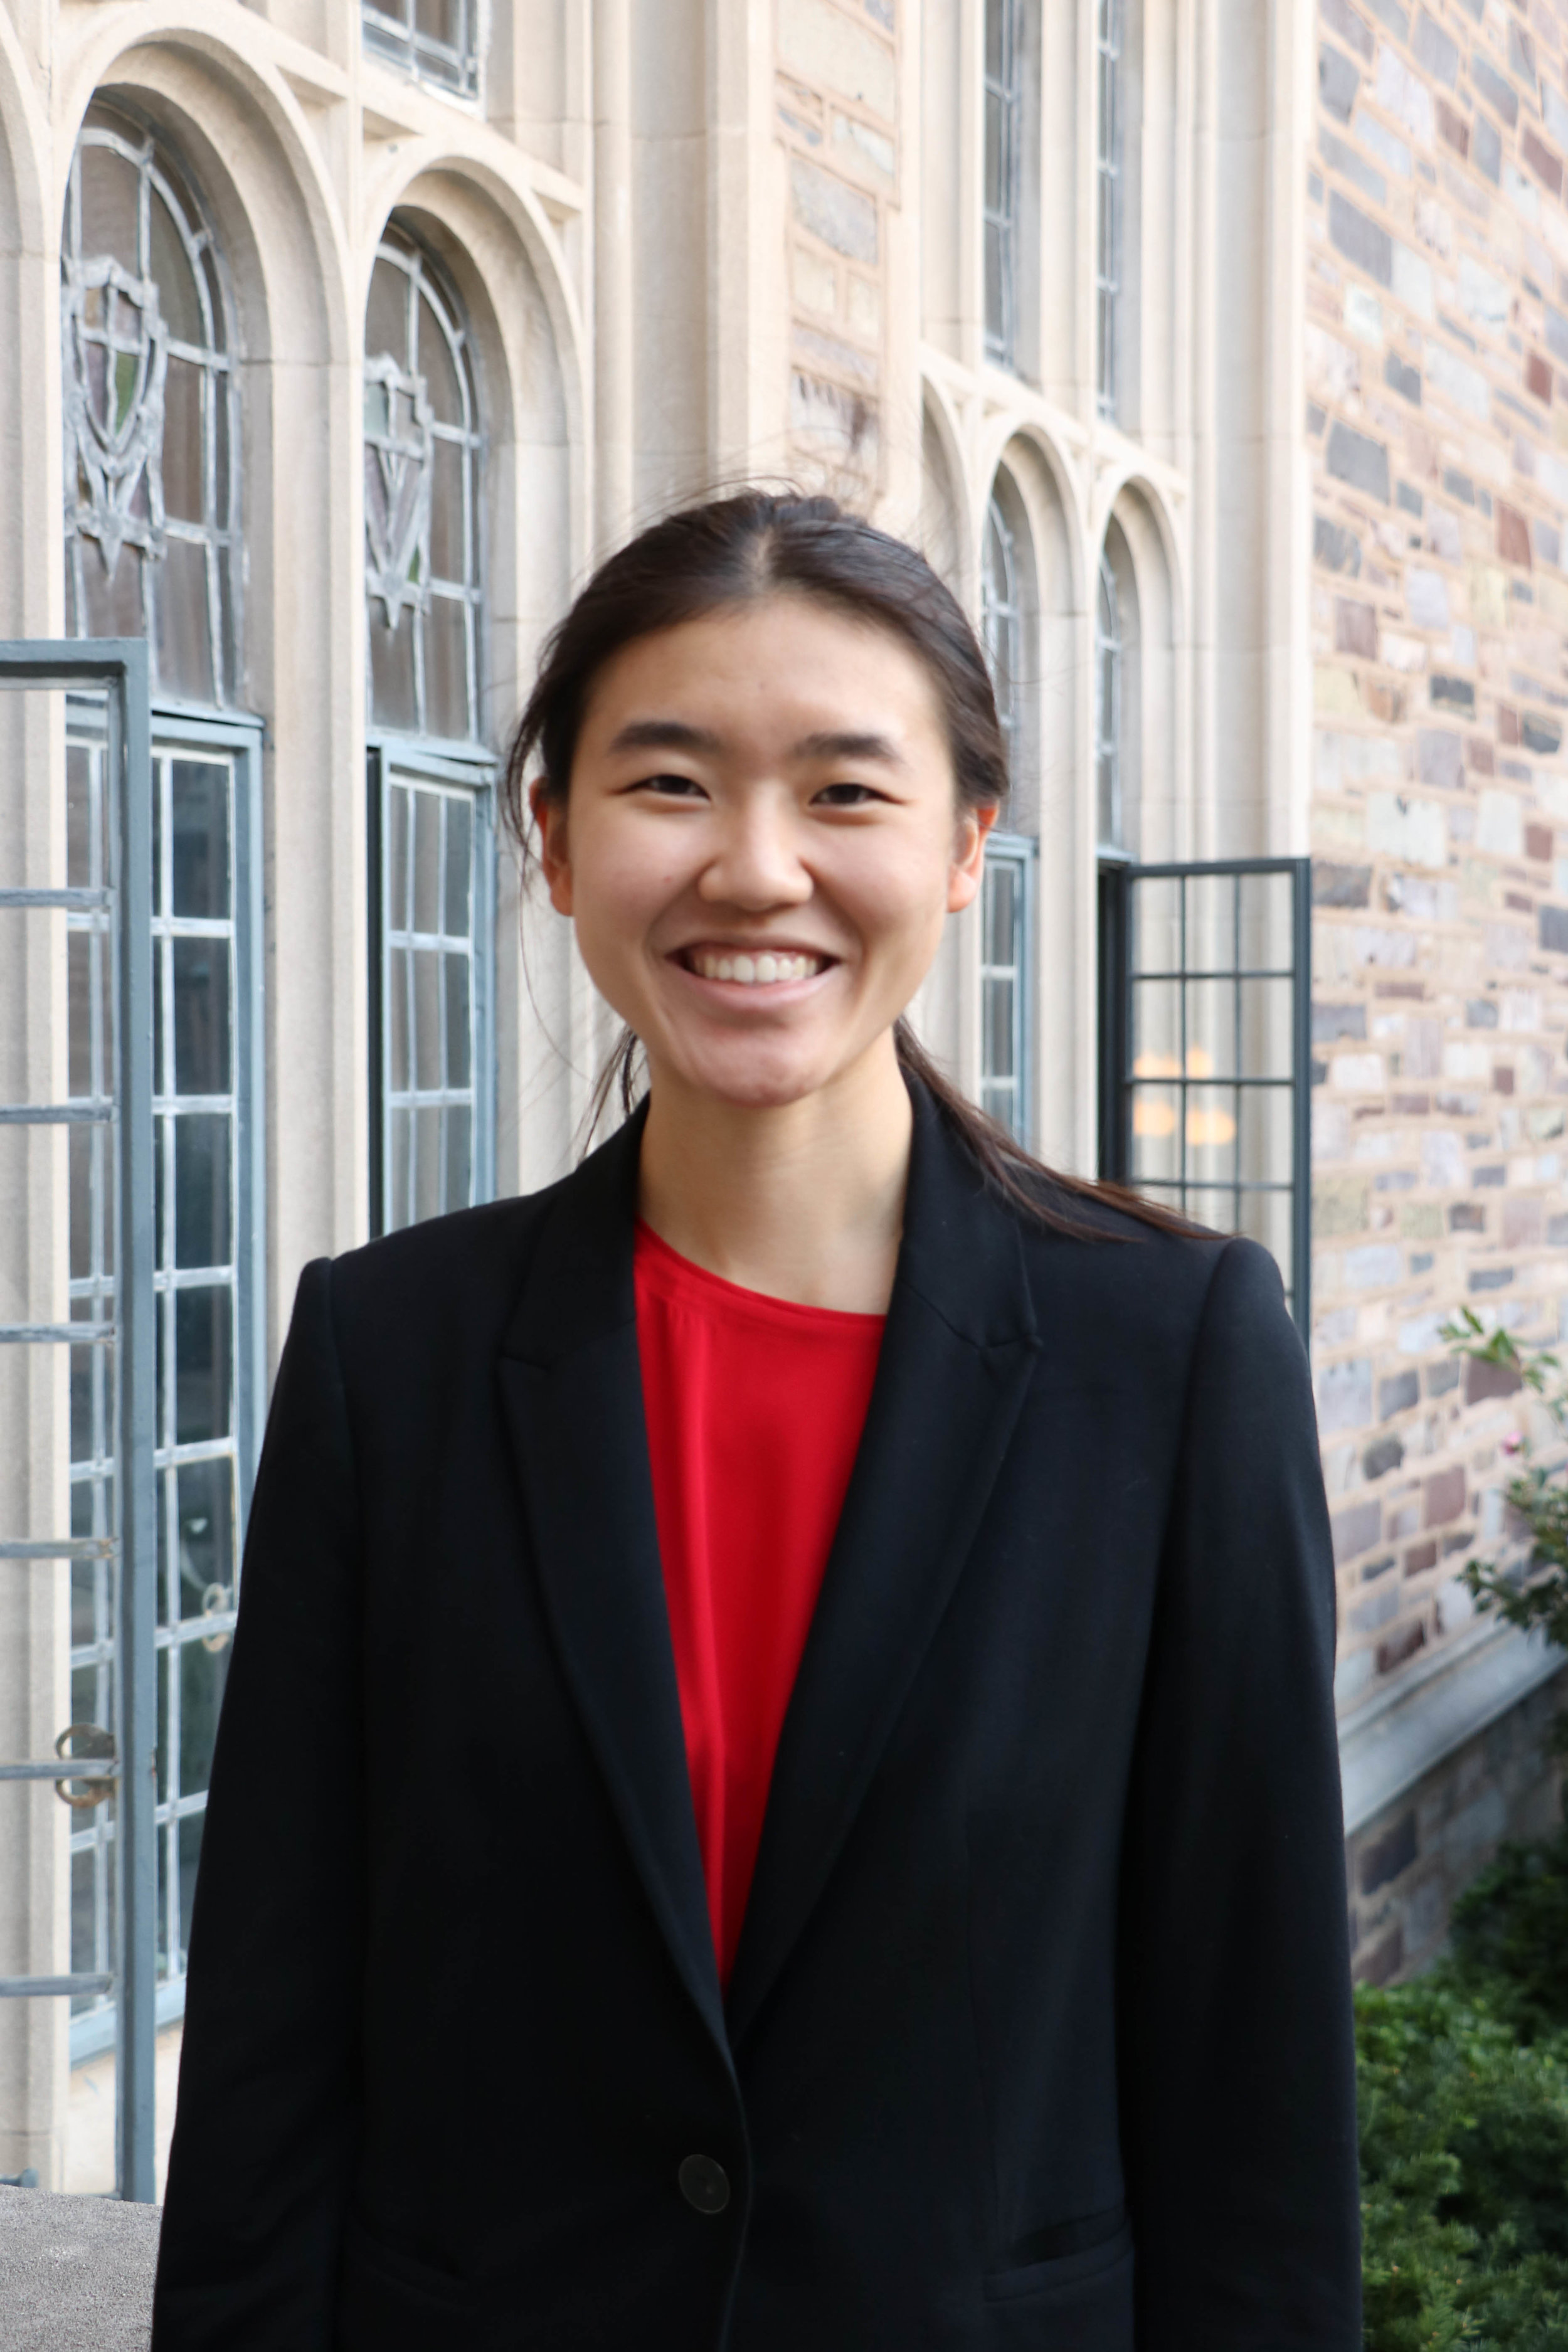 REBECCA HAN   Rebecca is a freshman from Tuscaloosa, AL. She is interested in majoring in the Woodrow Wilson School or Ecology and Evolutionary Biology and pursuing certificates in East Asian Studies and other fields. Though she speaks Mandarin at home, she has never studied the language until arriving to Princeton and is excited by the campus's vibrant Chinese-speaking community. She is interested in possibly studying or researching human rights and the impacts of industry on the environment in China. and At Princeton, she writes for the News section of the Daily Princetonian and is involved with Trego Singers, the Princeton Chinese Theatre, the Playwright's Guild, and the Conservation Society.